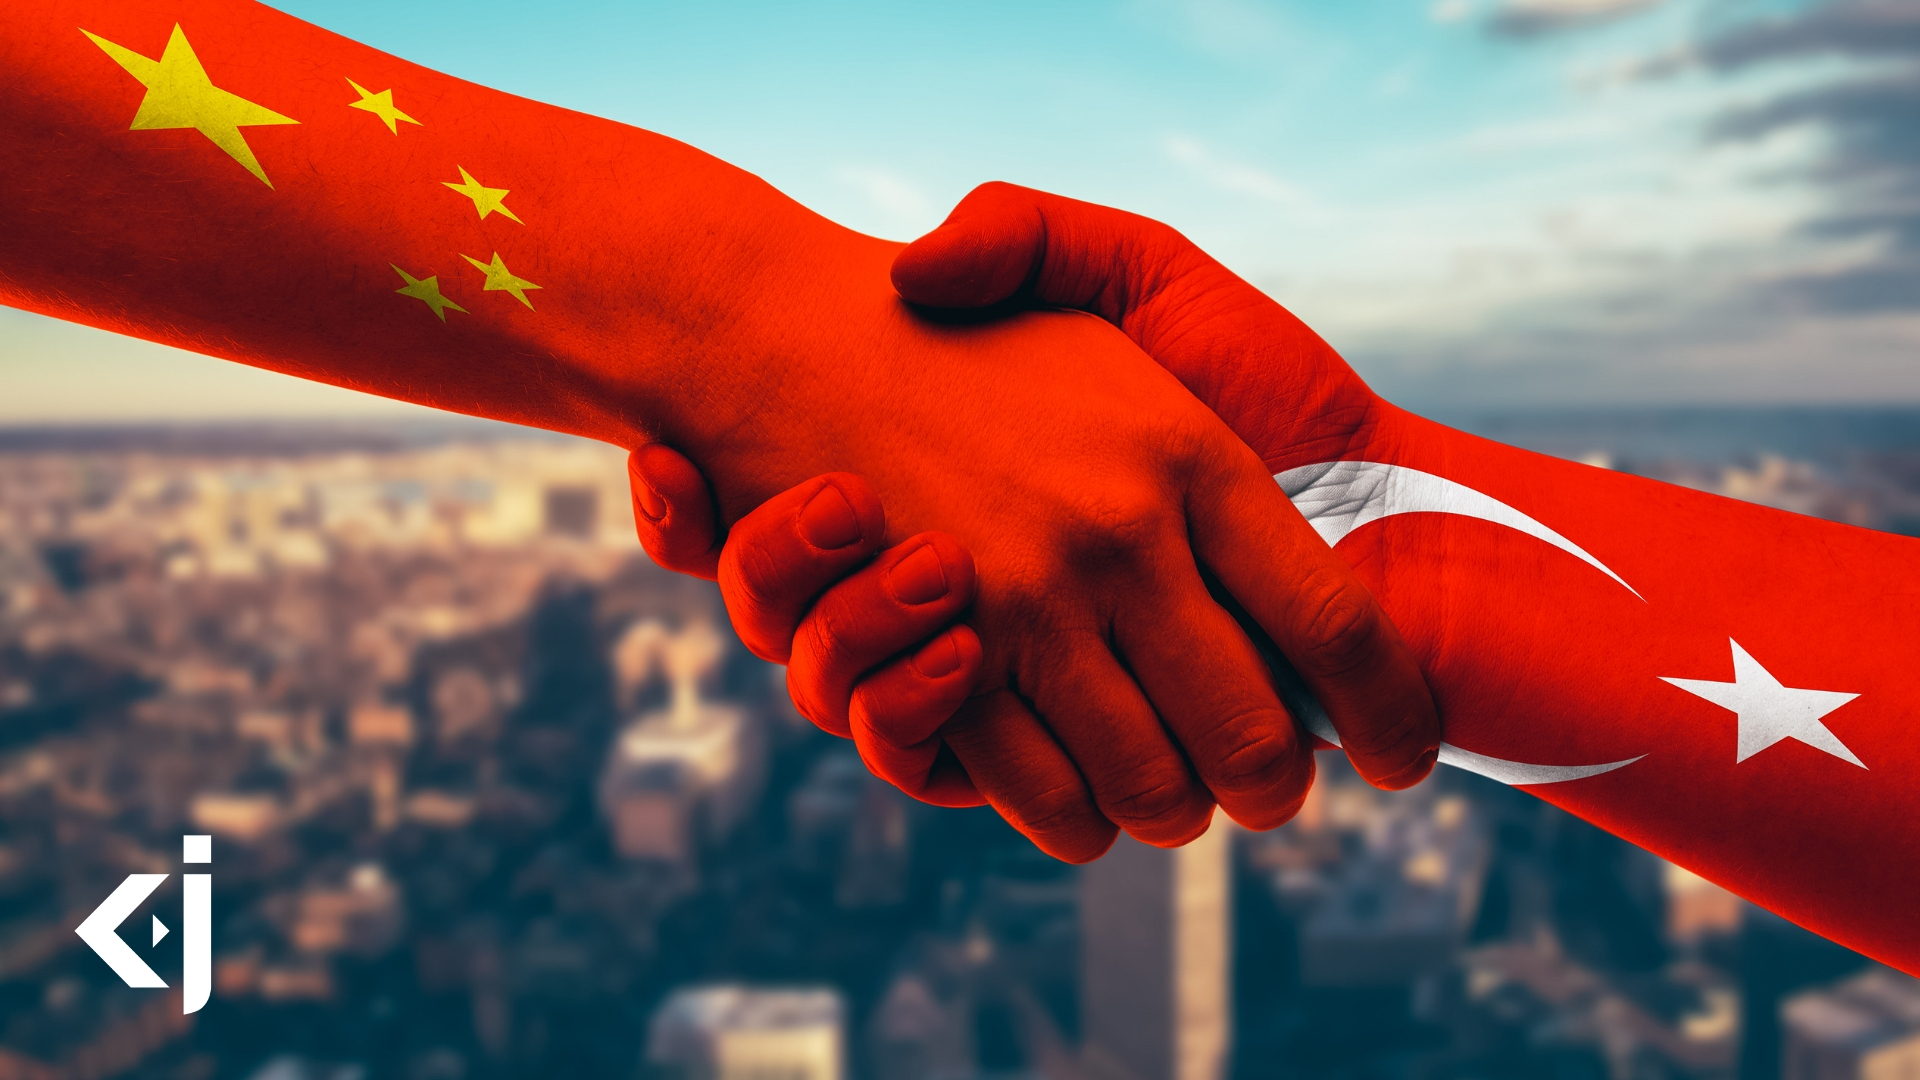 Turkey is rapidly increasing economic relations with China: 5 Geopolitical Effects You Need to Know